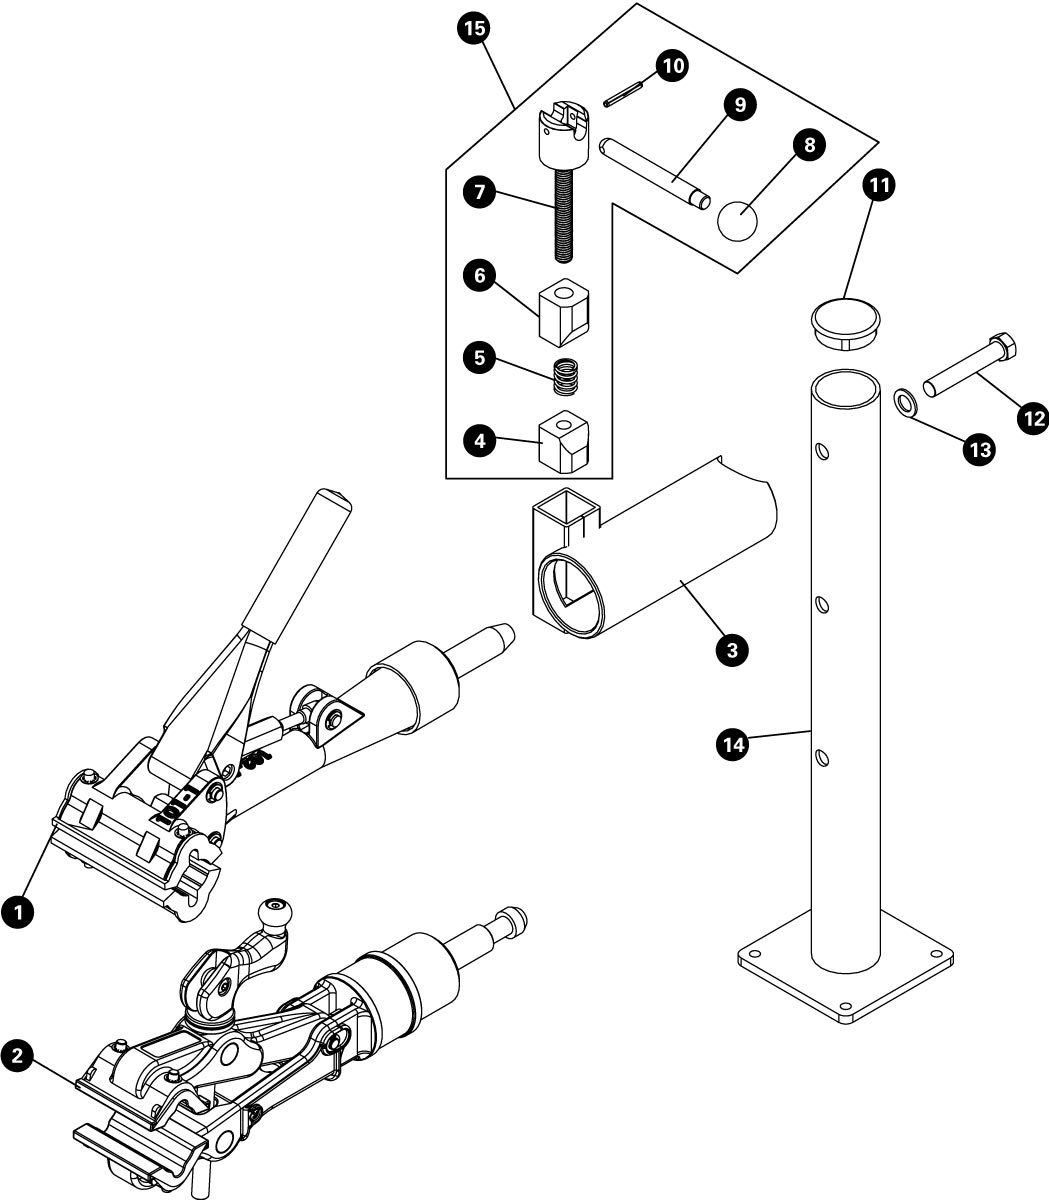 Parts diagram for PRS-4.2-2 Deluxe Bench Mount Repair Stand, click to enlarge